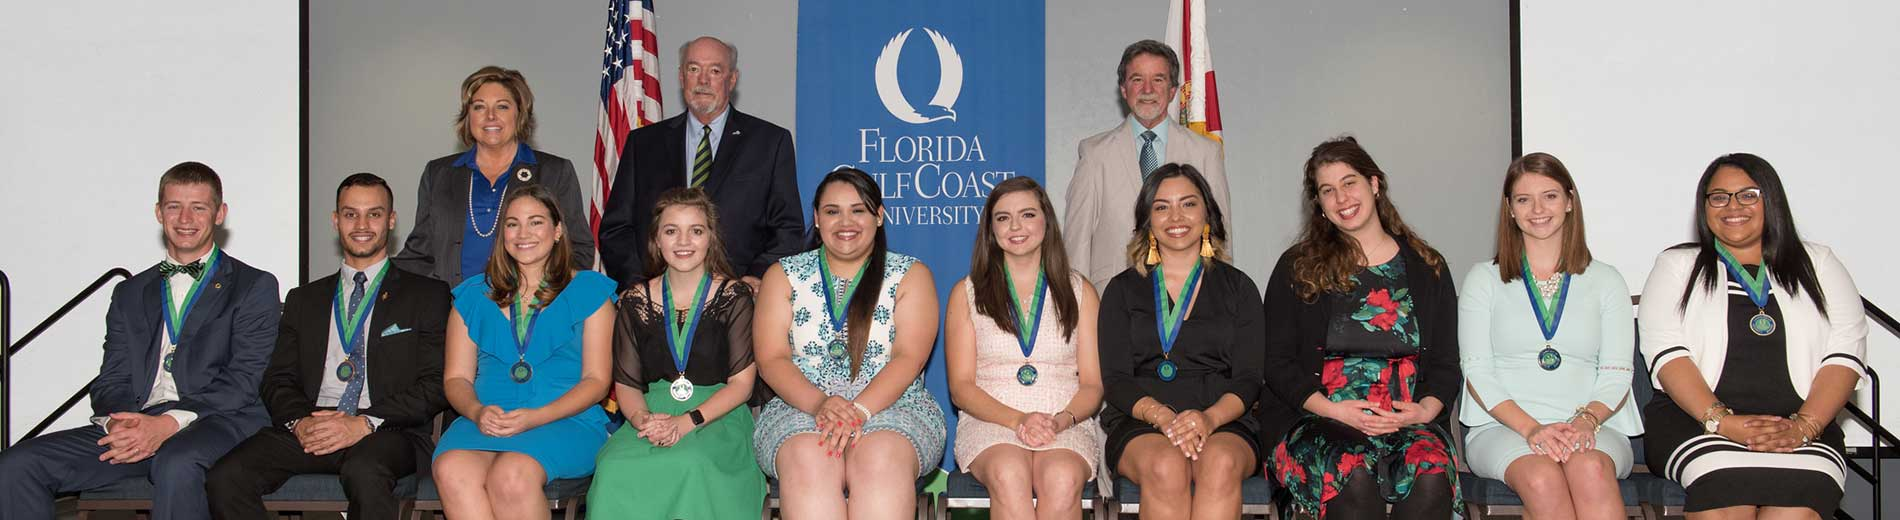 Photos shows students inducted into the FGCU Hall of Fame